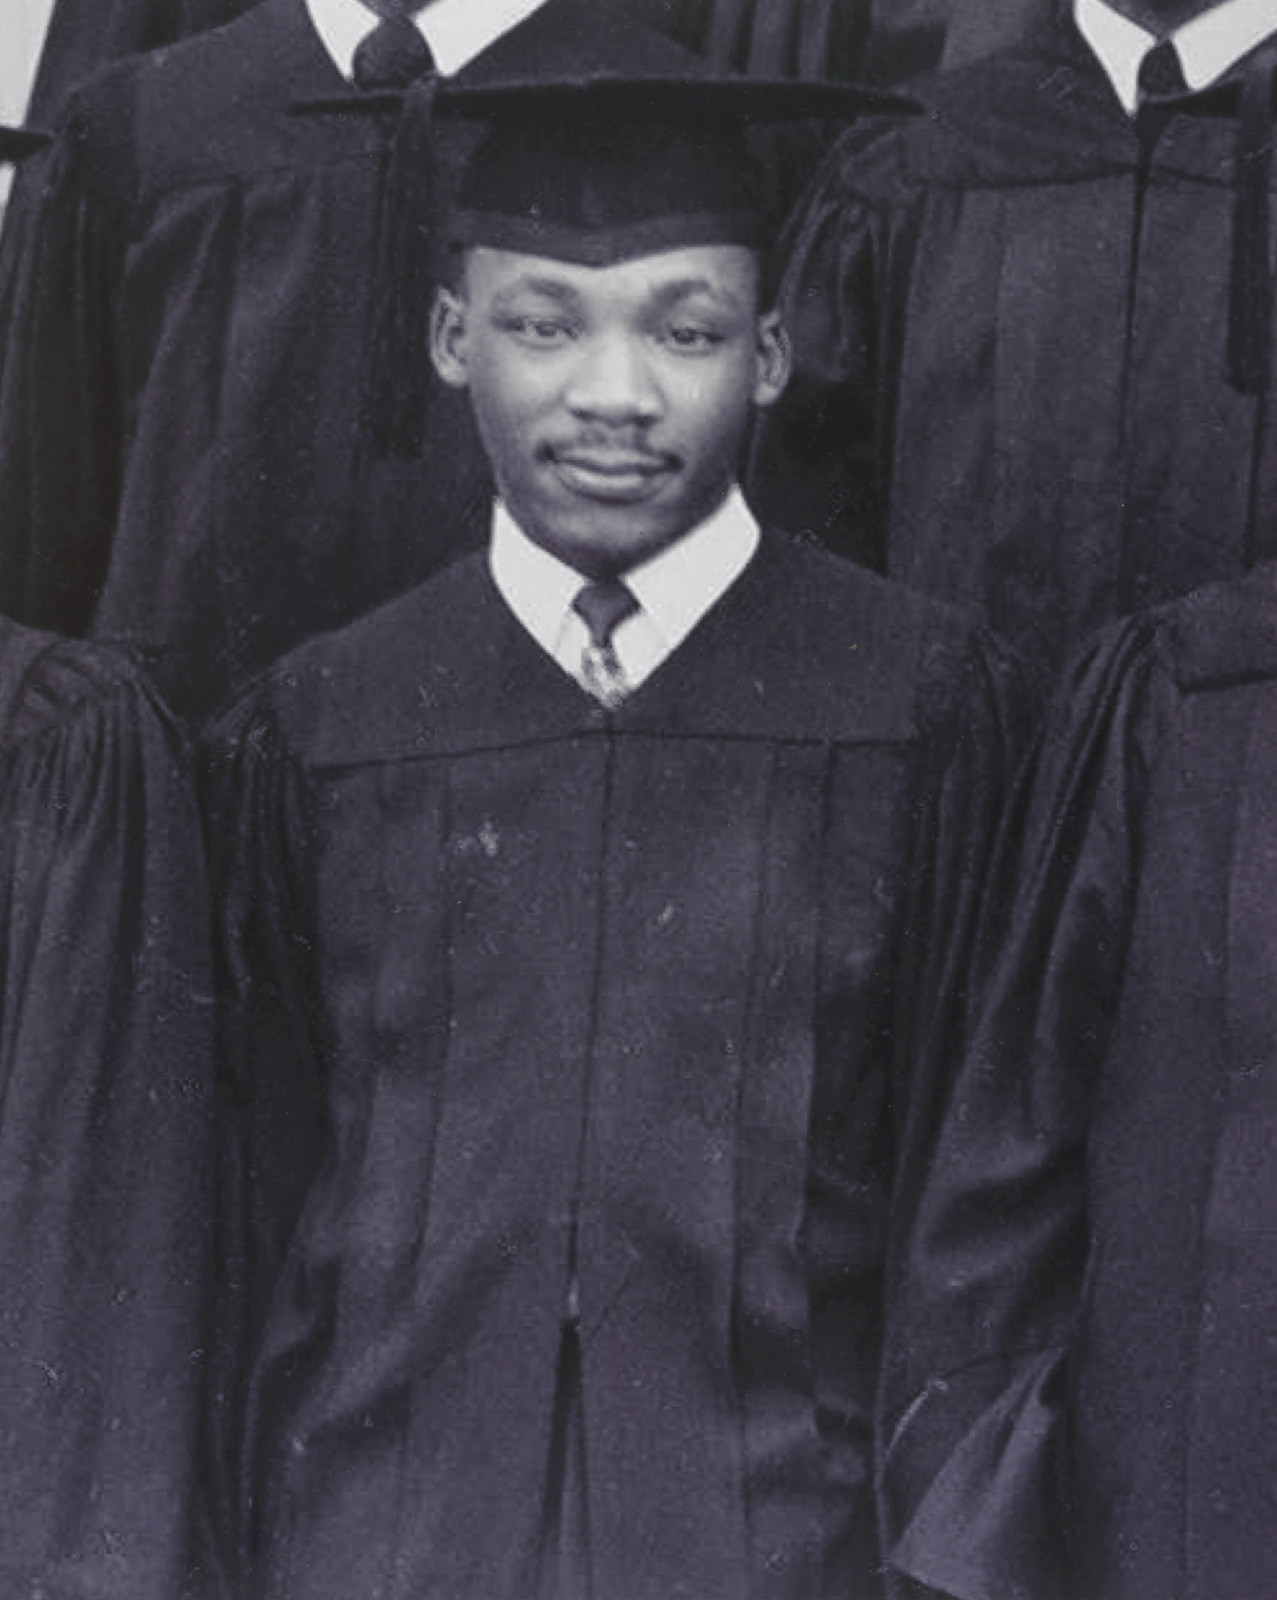 College Photos Of Martin Luther King Jr Show The Icon S